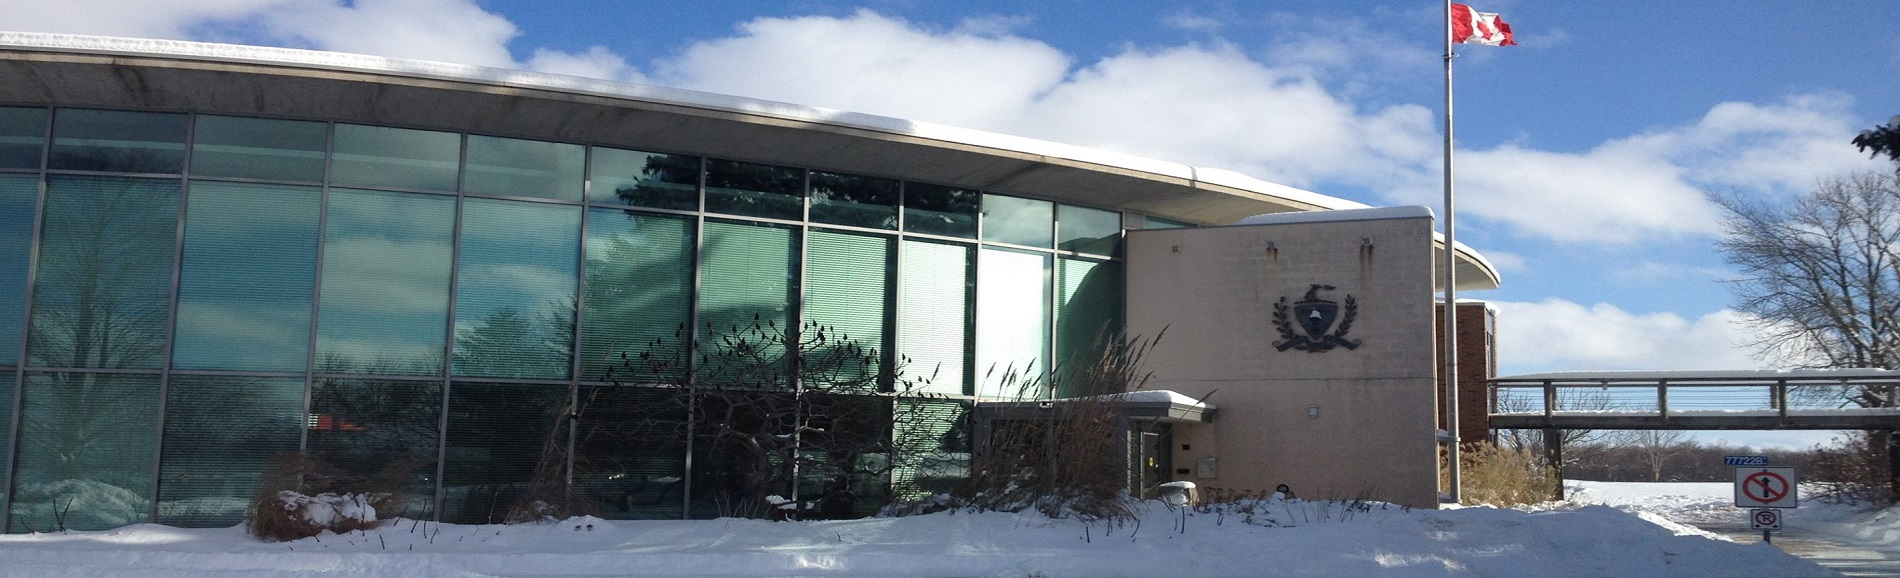 Huron County building in winter